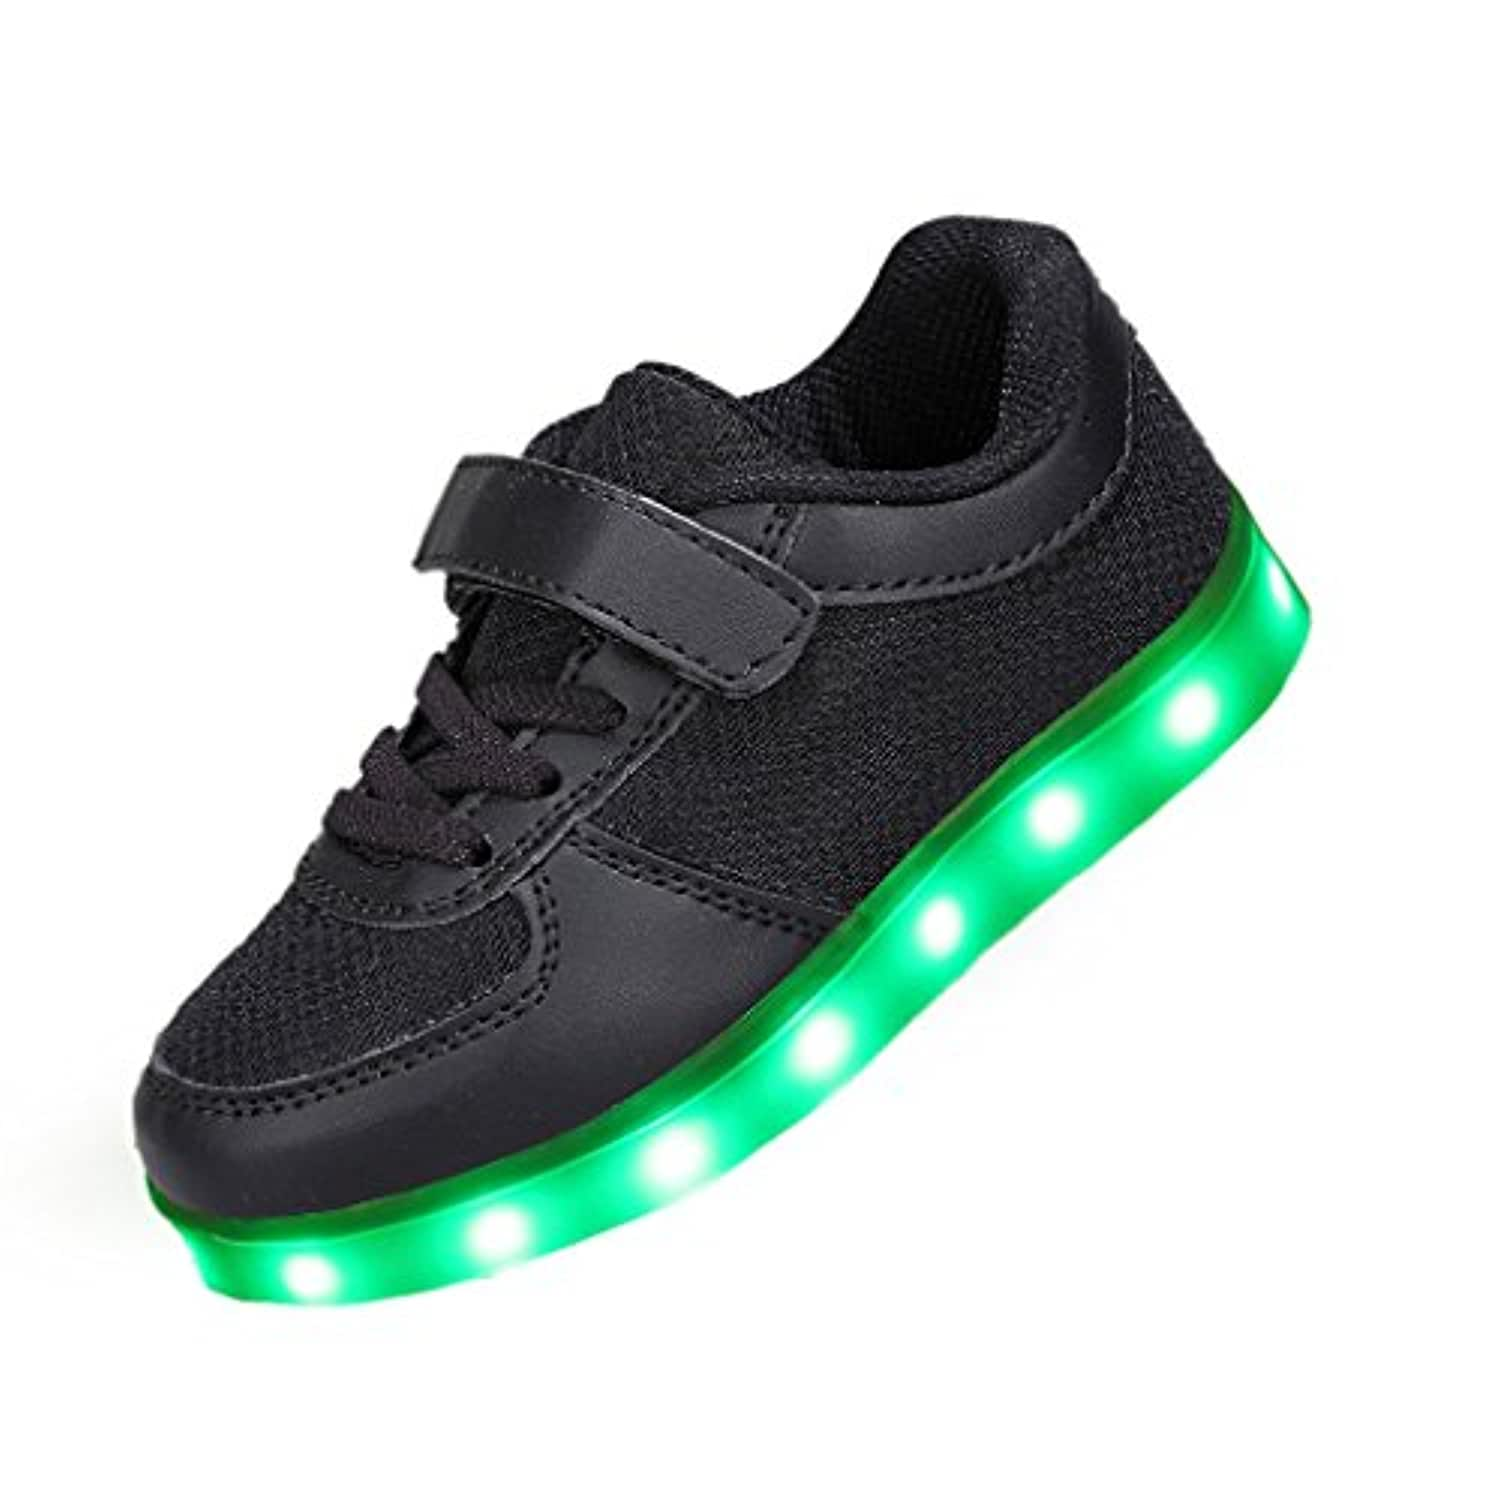 SAGUARO® 7 Colors Unisex-child LED Light Up Sport Running Shoes Luminous Flashing Glow Sneakers Student Dance Boots, Black